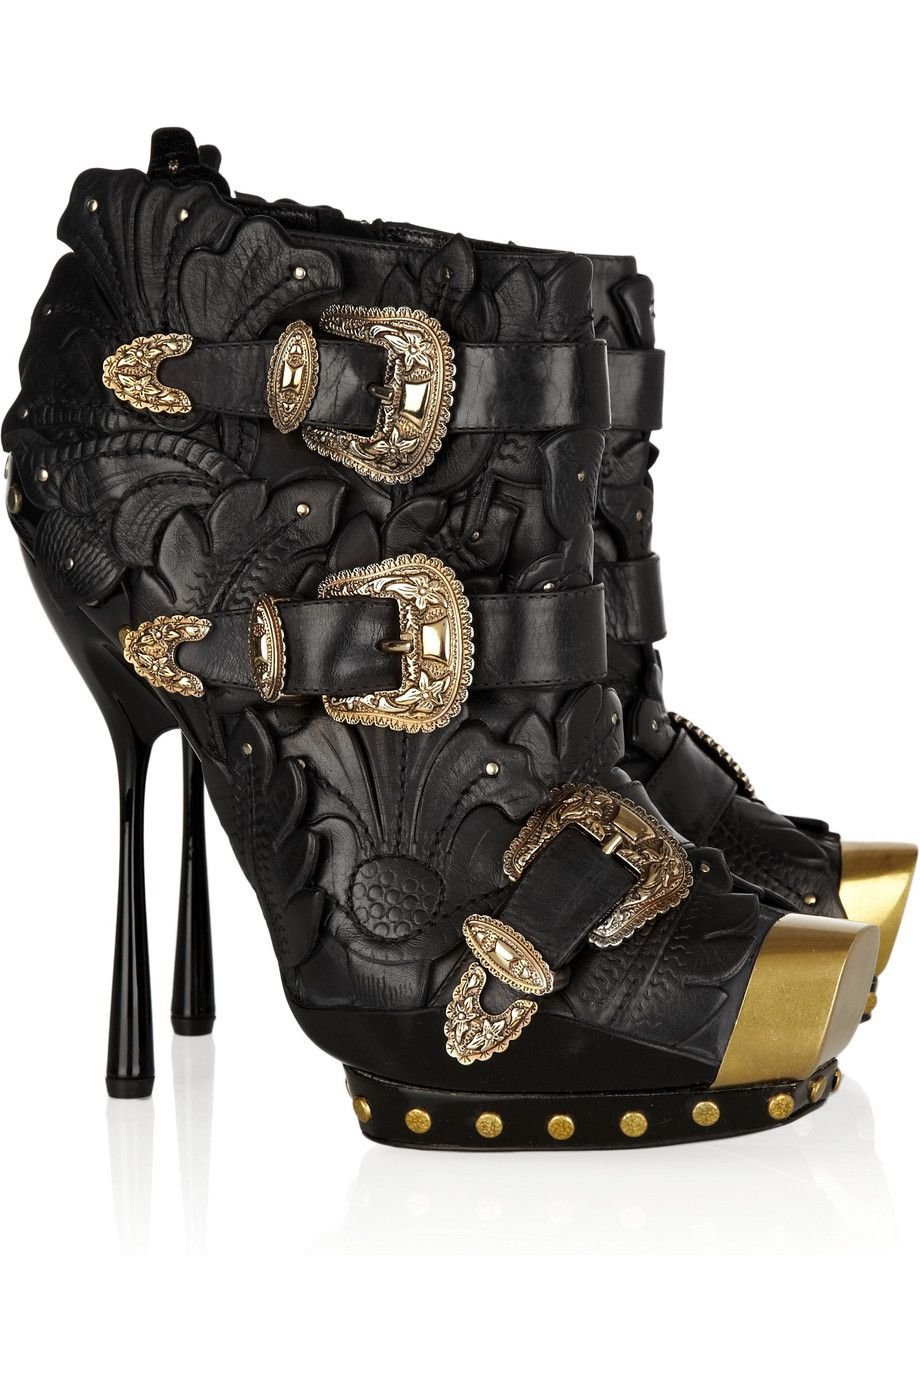 Qpantb Mcqueen My Alexander For Pinterest Love reoWQxEBdC